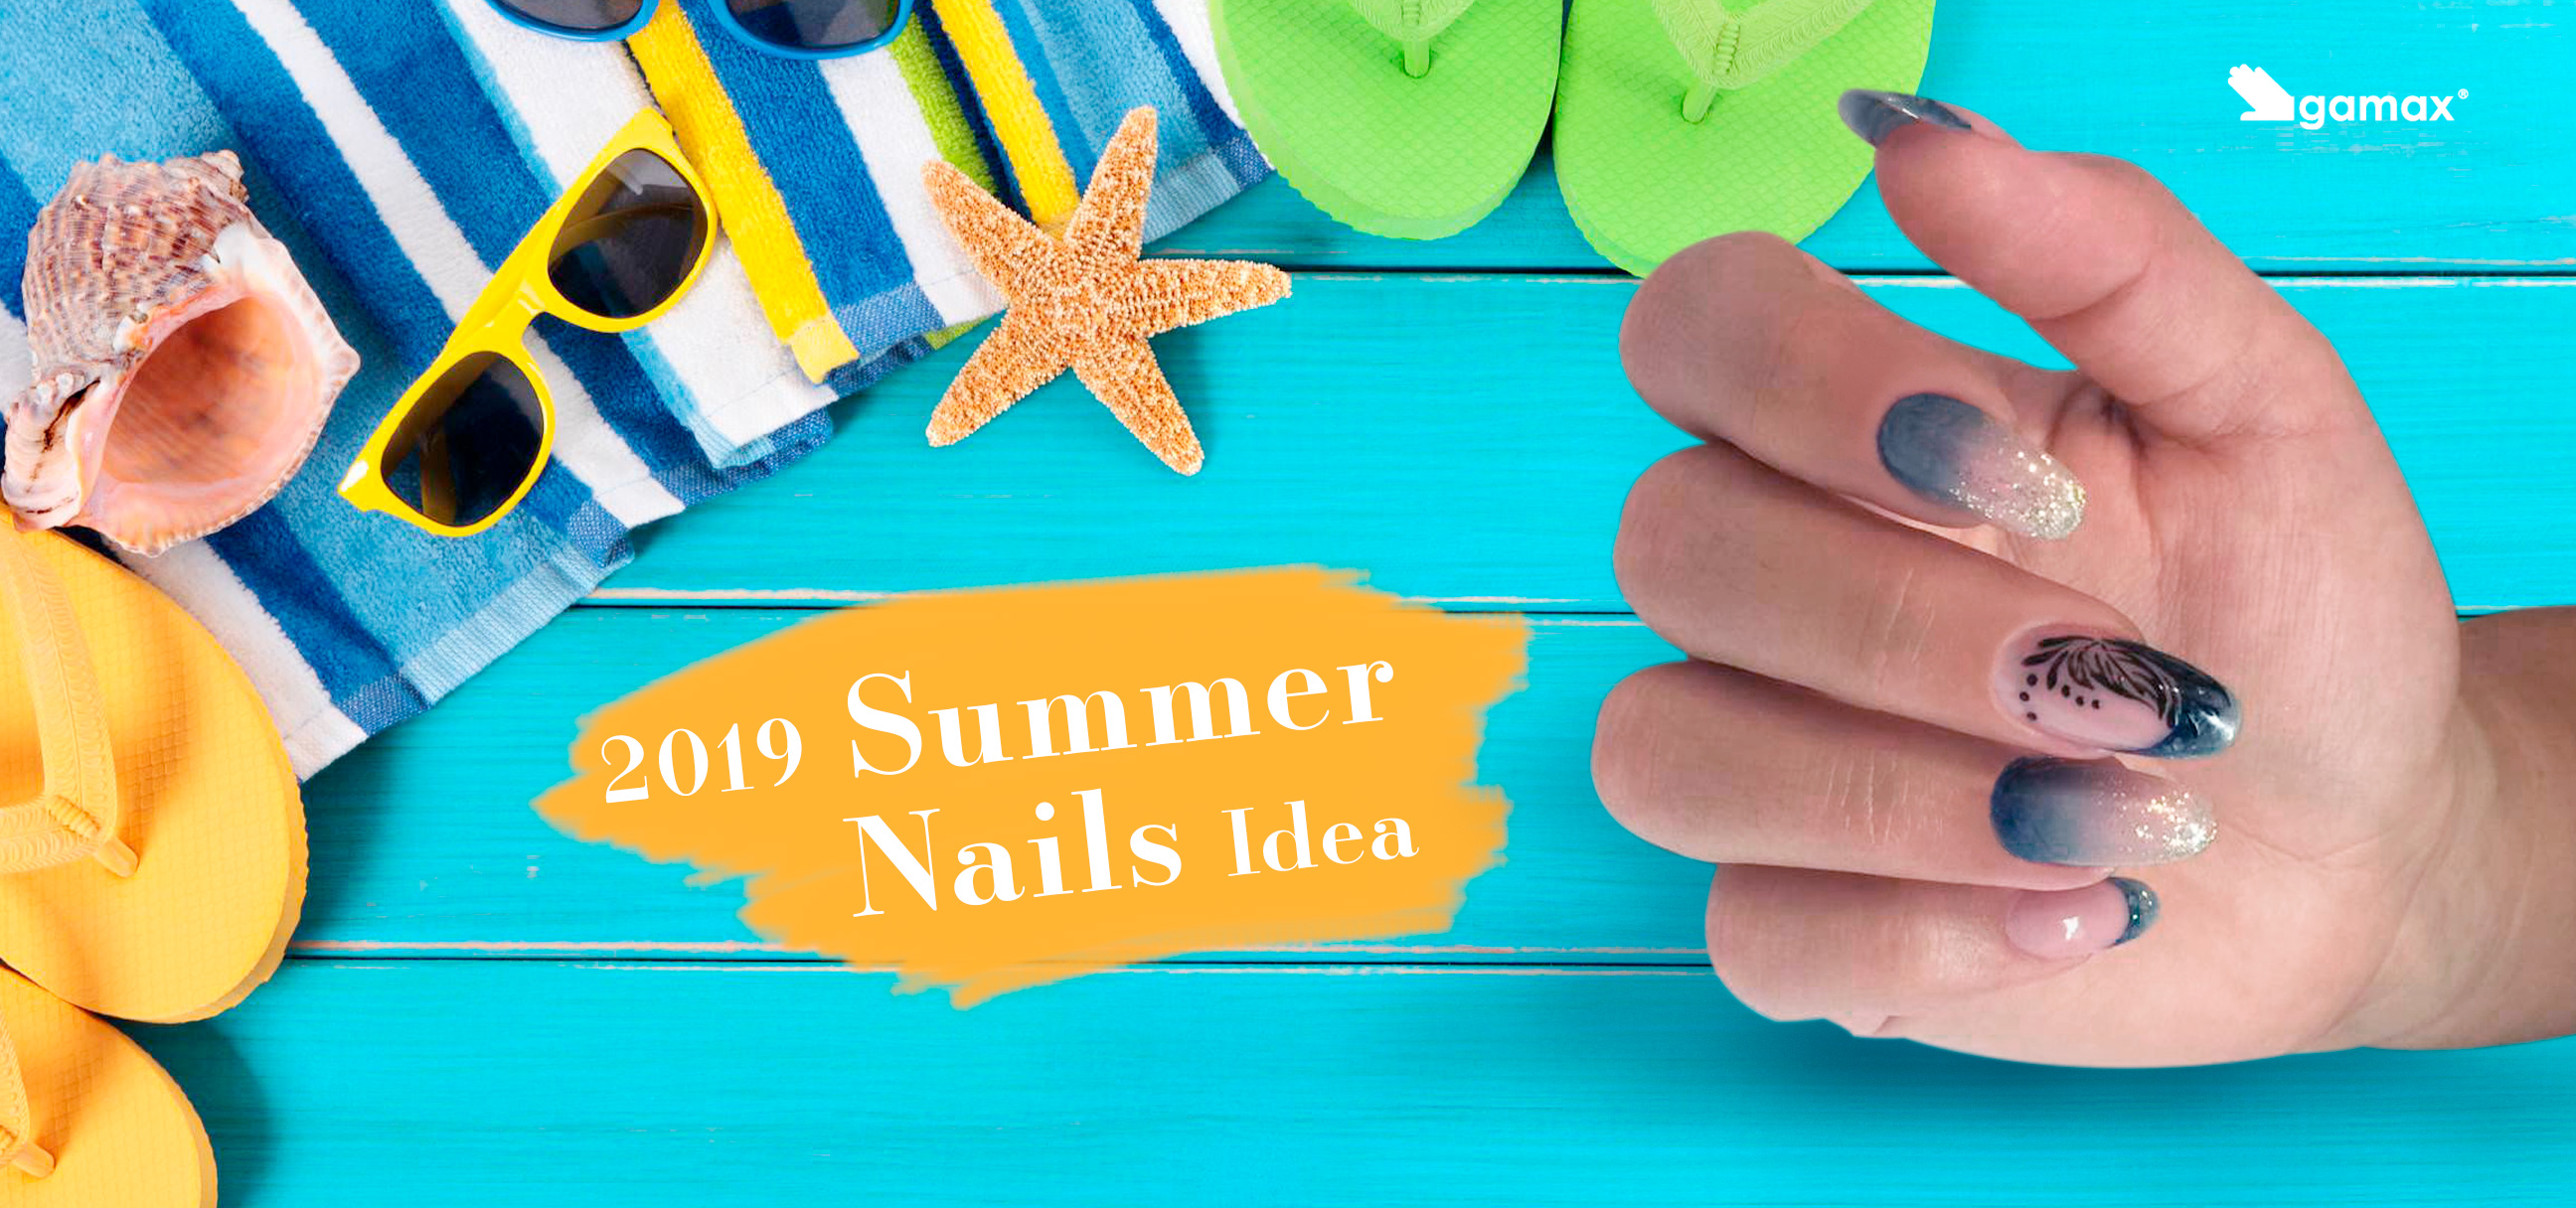 Novità nails Estate 2019